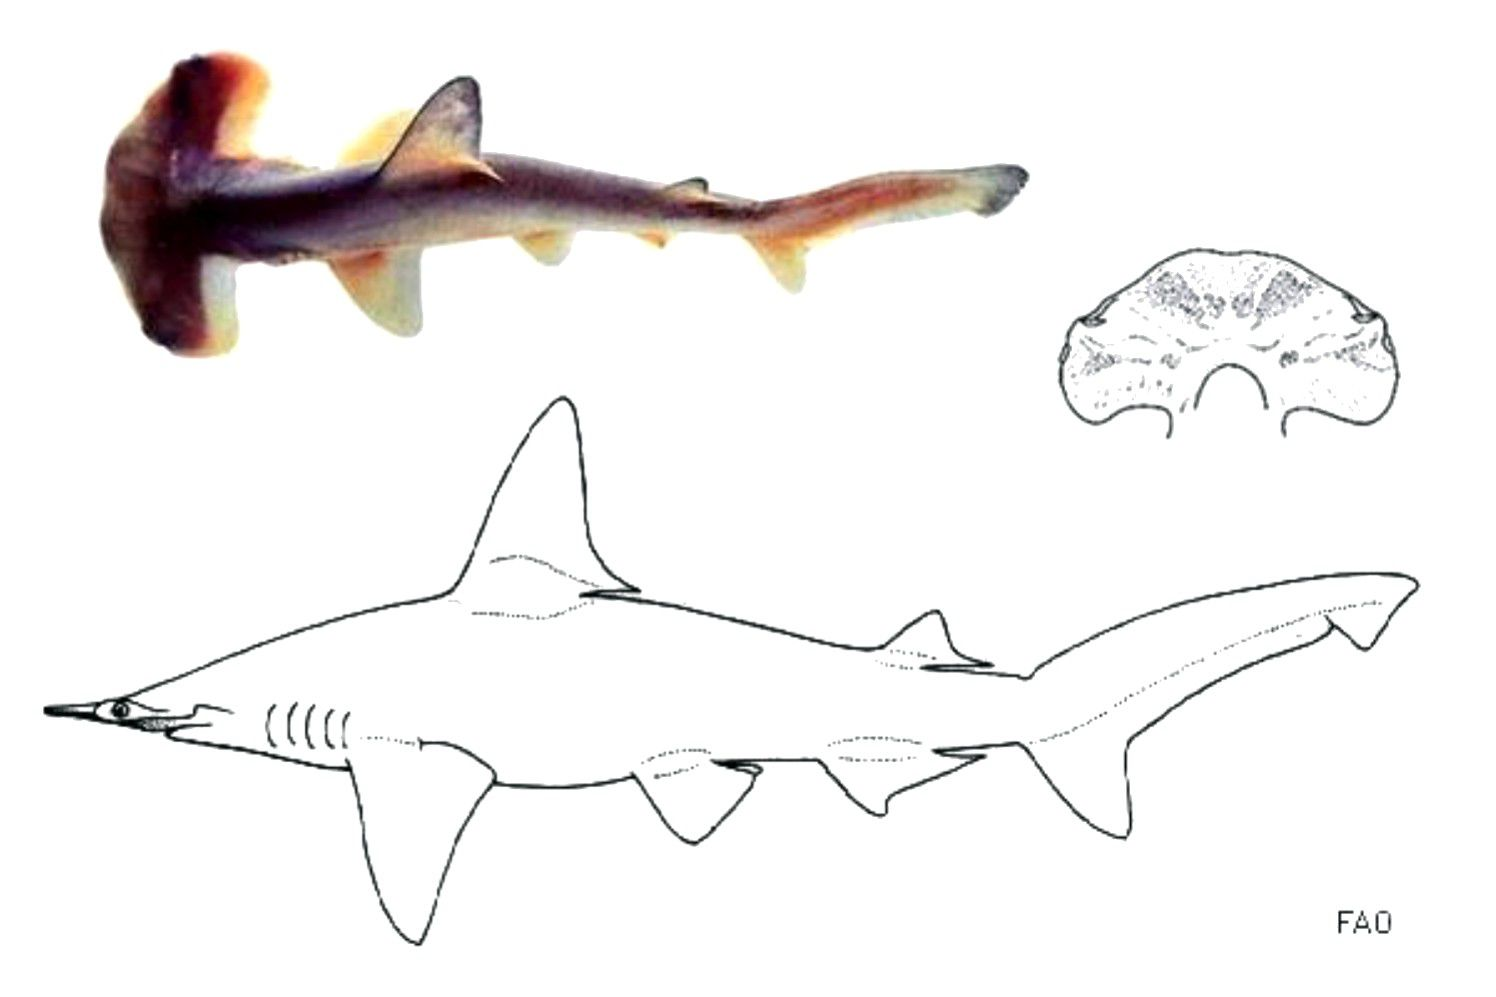 Different depictions of the smalleye shark